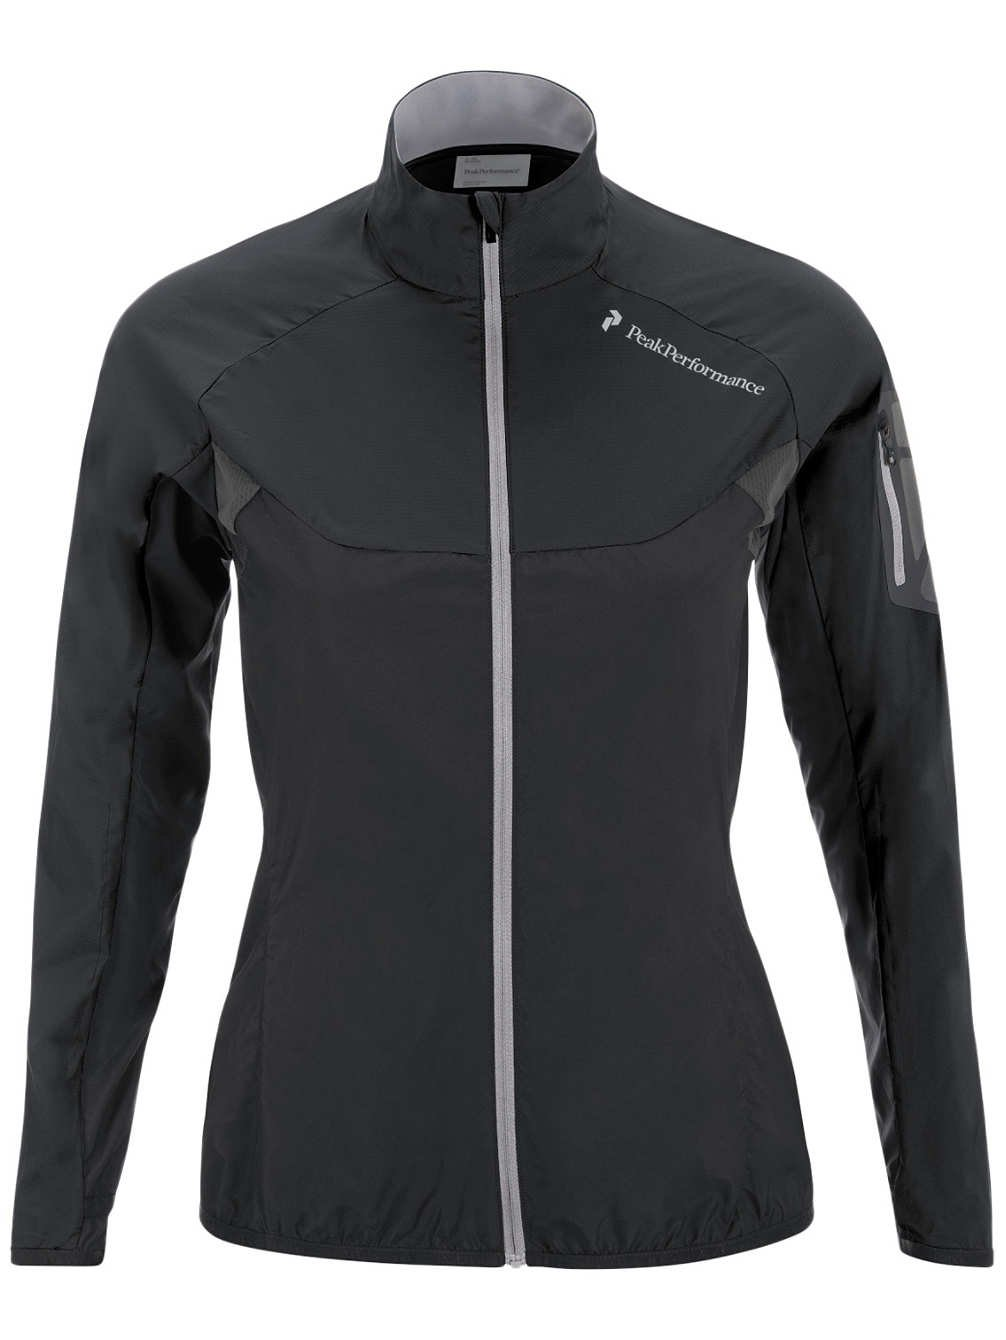 Damen Snowboard Jacke Peak Performance Focal Jacket günstig kaufen